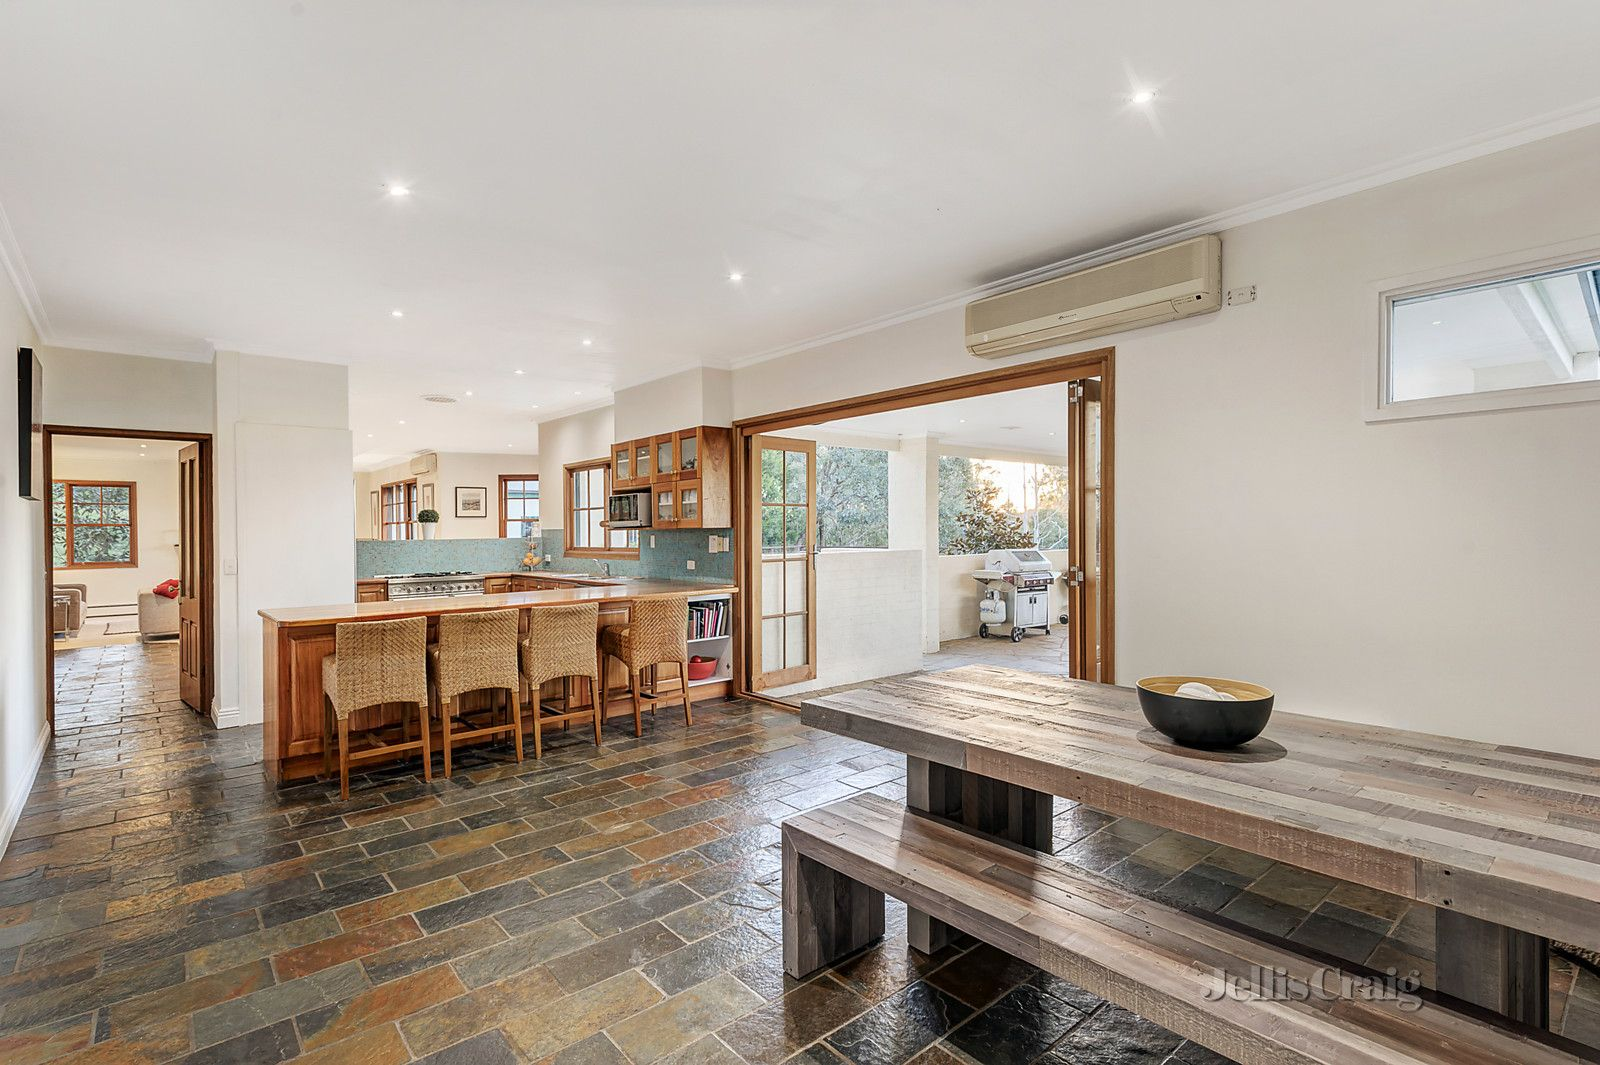 33-41 Beauty Gully Road, Warrandyte VIC 3113, Image 2